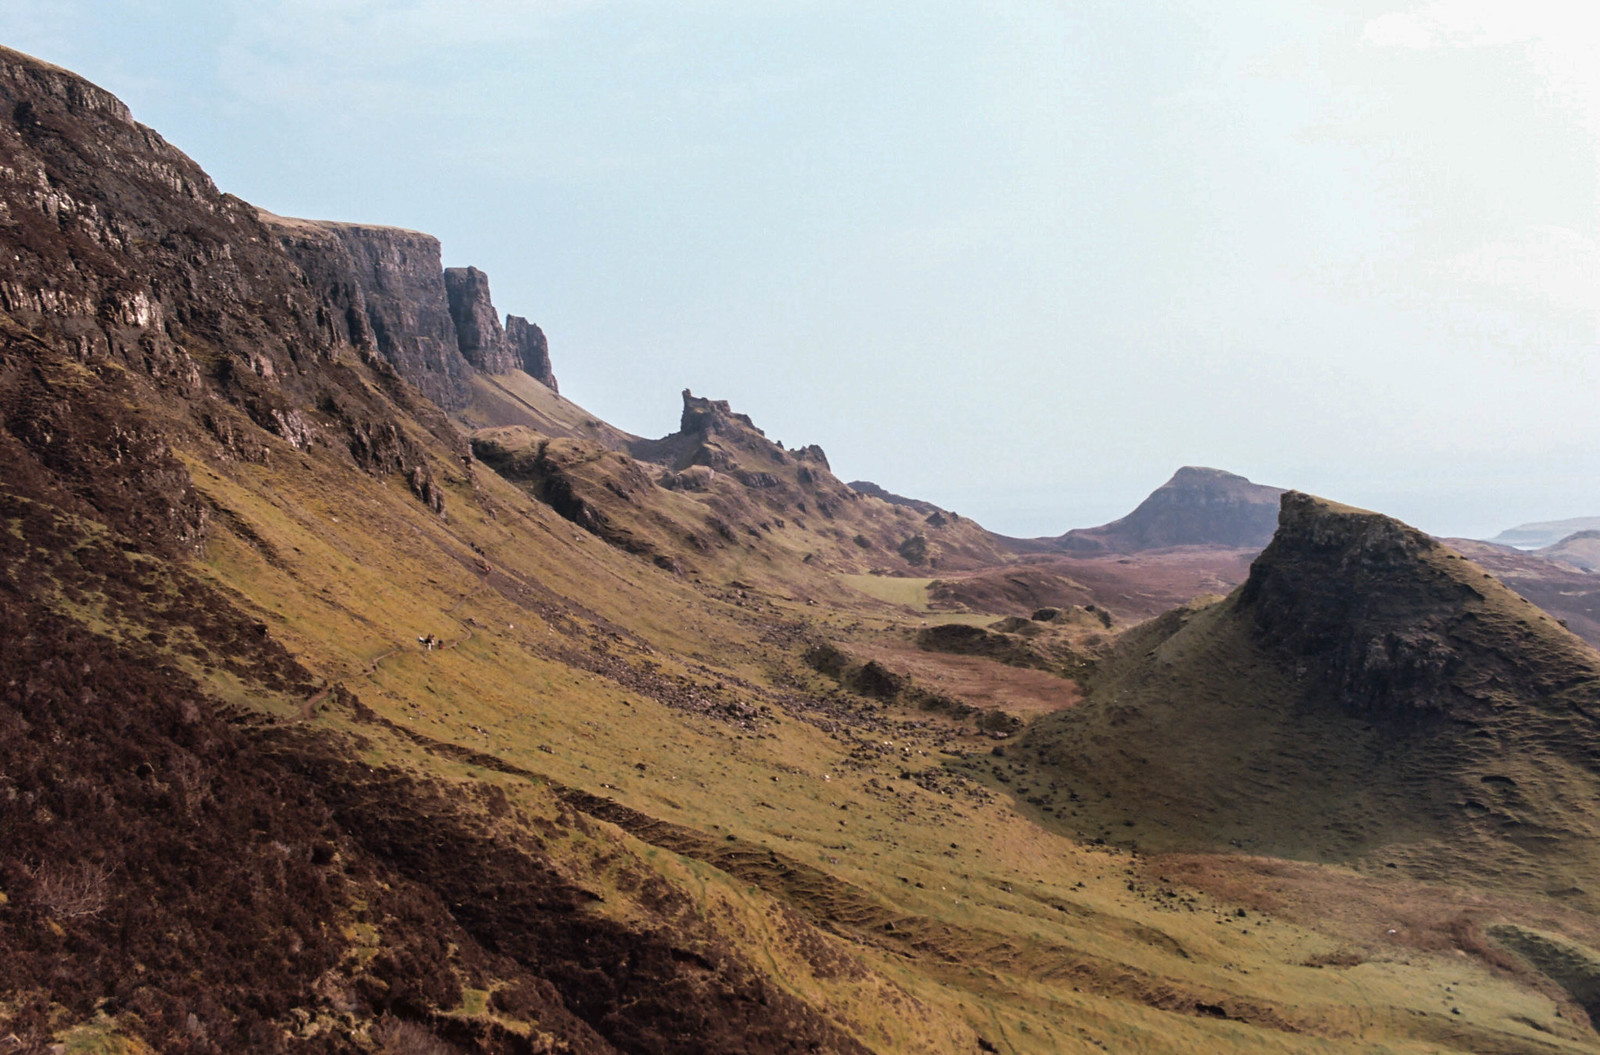 The Quiraing taken on Kodak Ektar 100